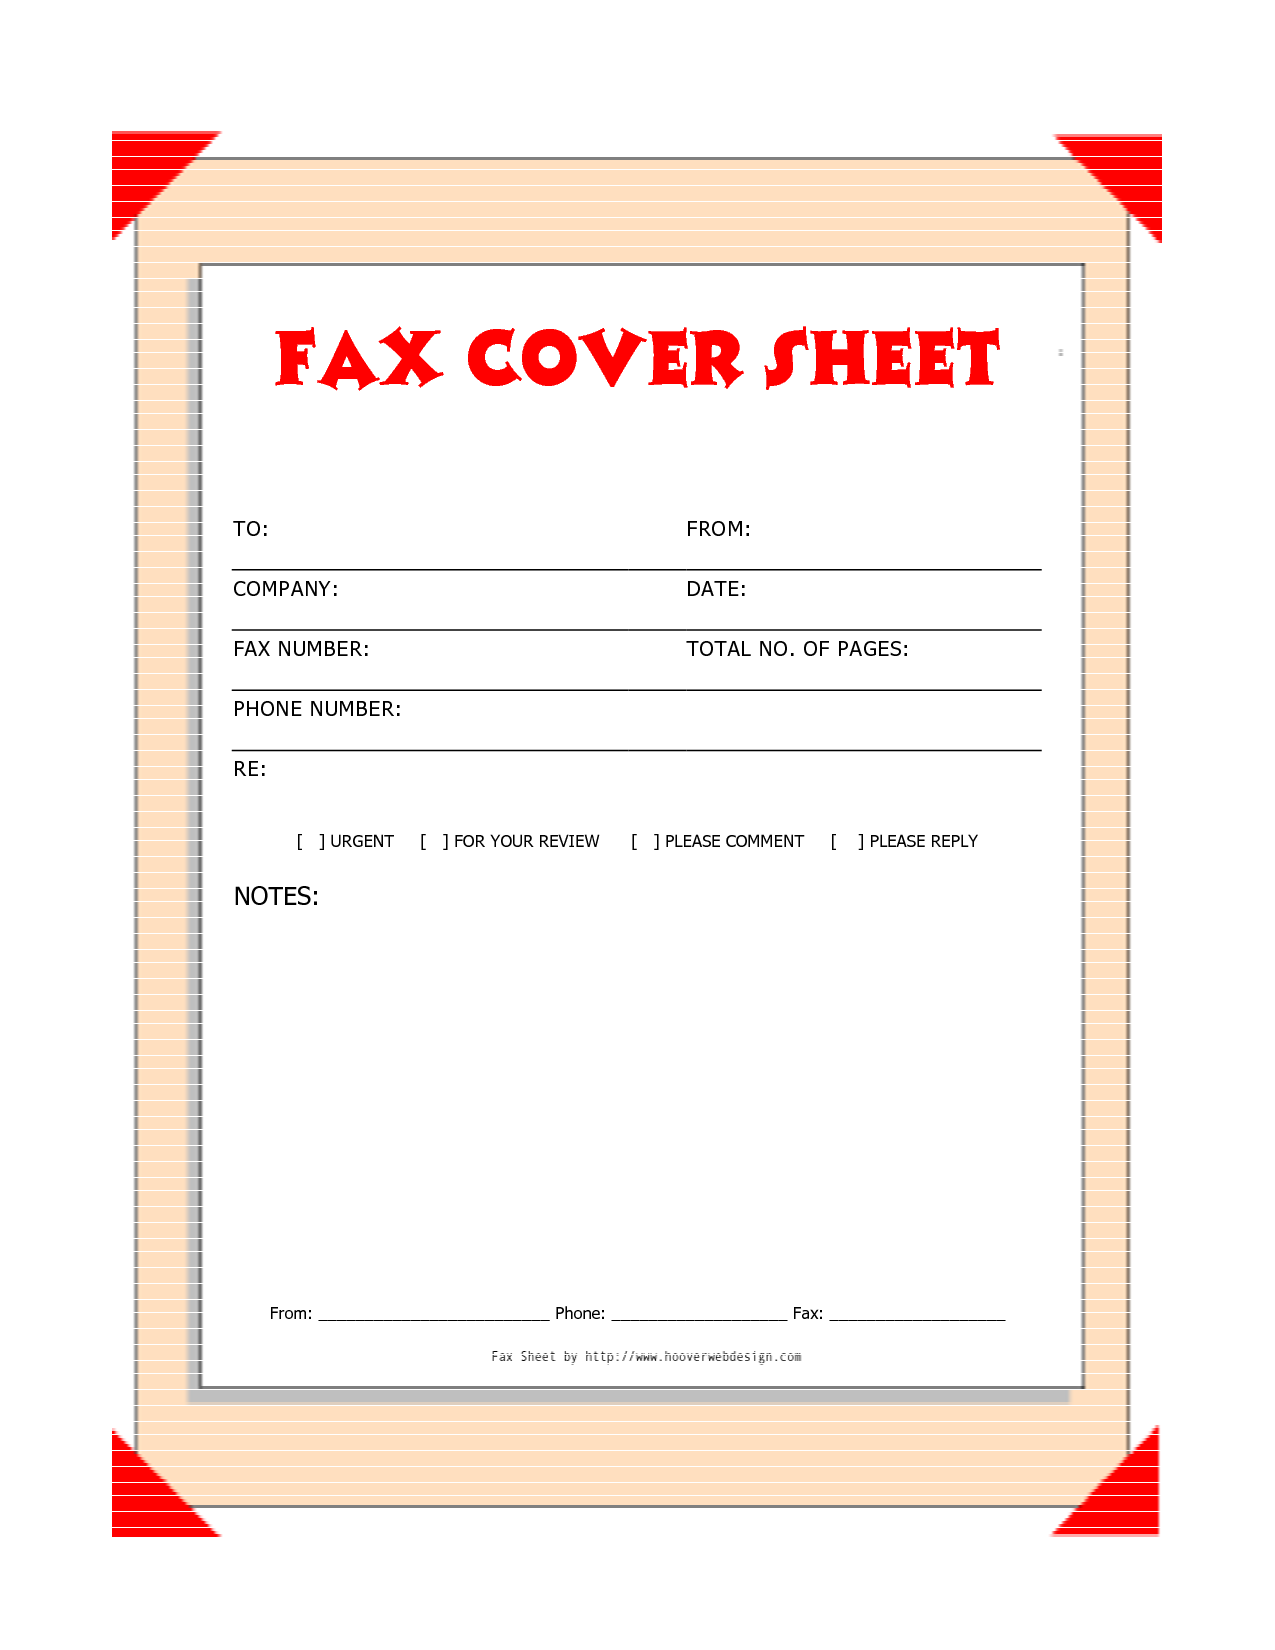 Free Downloads Fax Covers Sheets | Free Printable Fax Cover Sheet Template  Red   Download As PDF